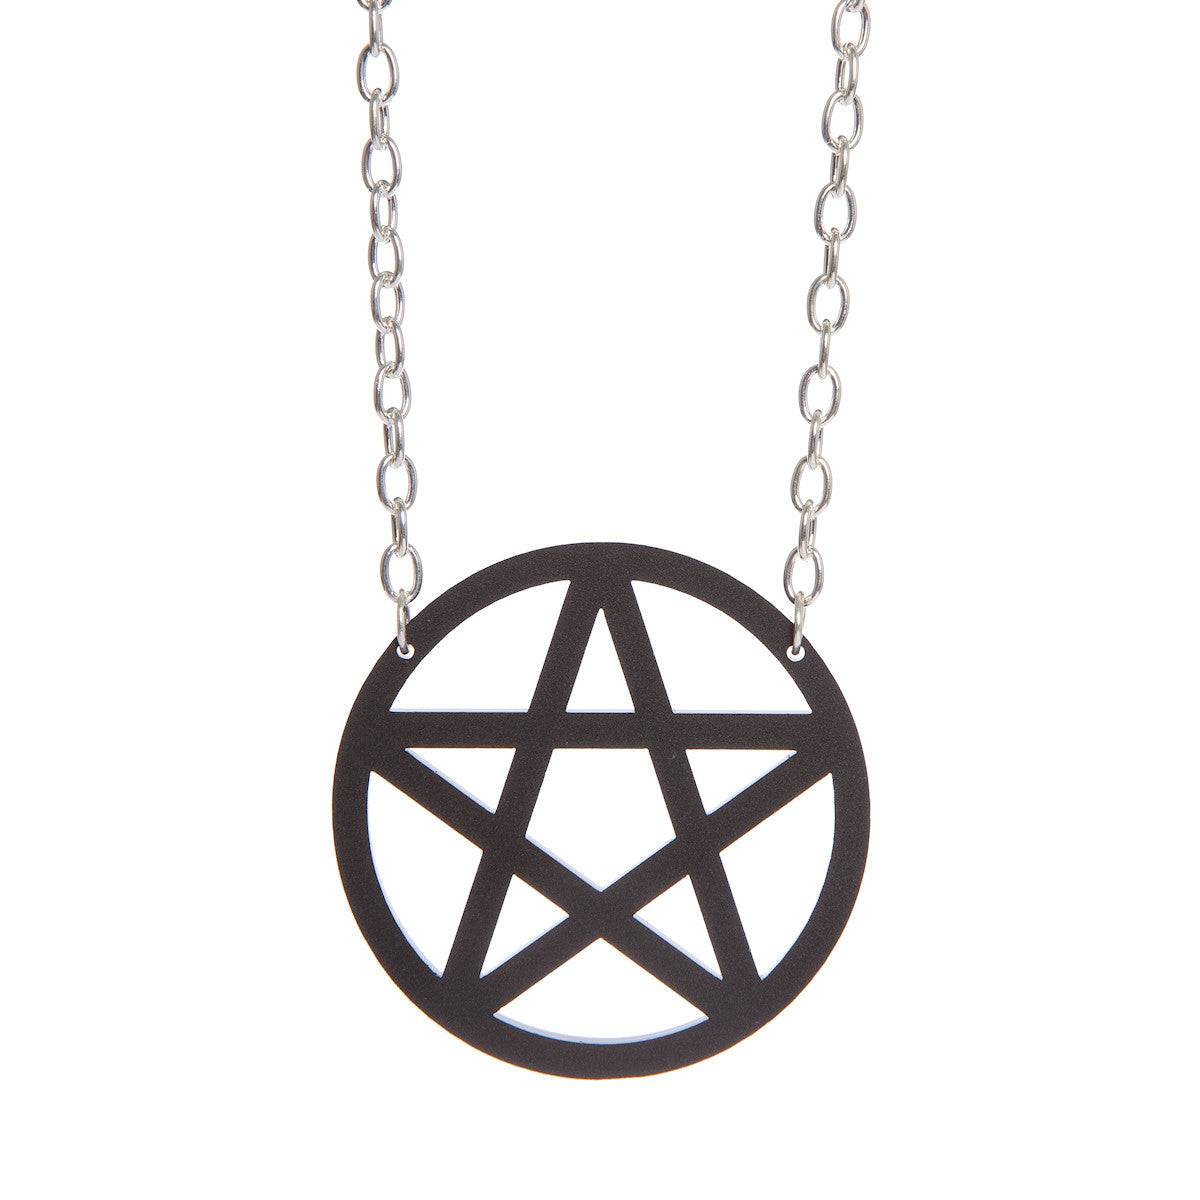 Sugar & Vice Pentagram Necklace 1